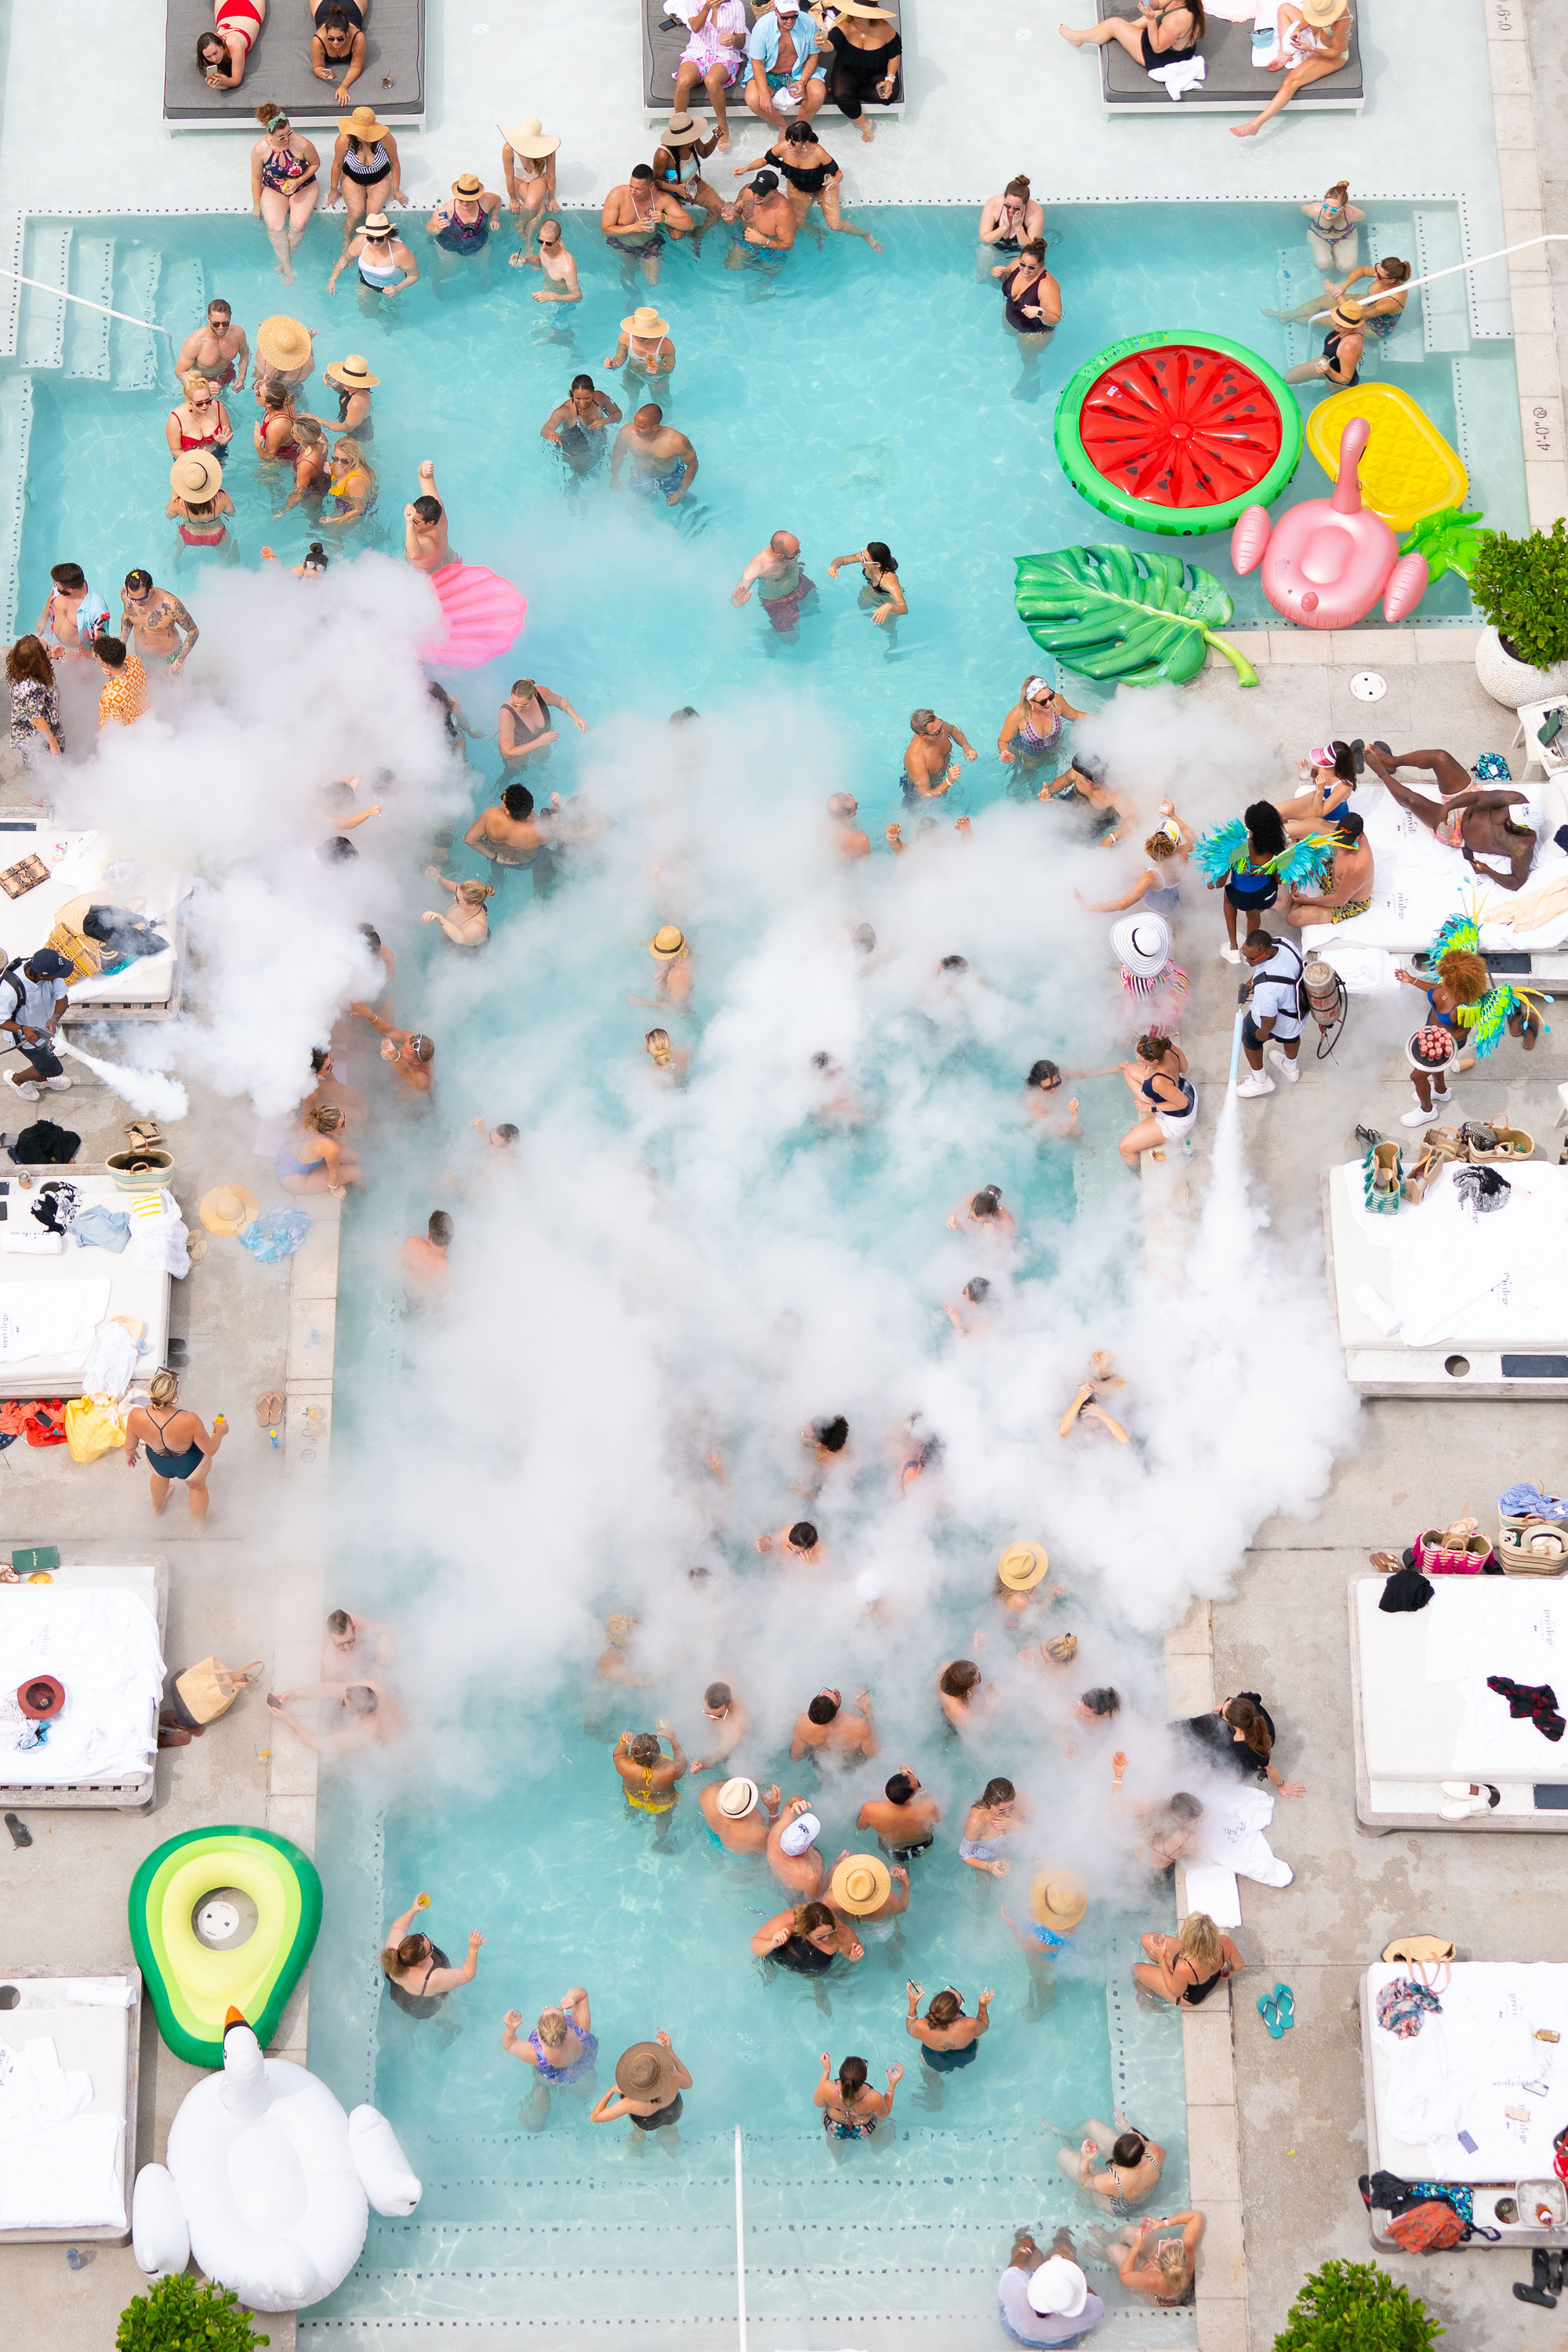 Engage! Event pool party